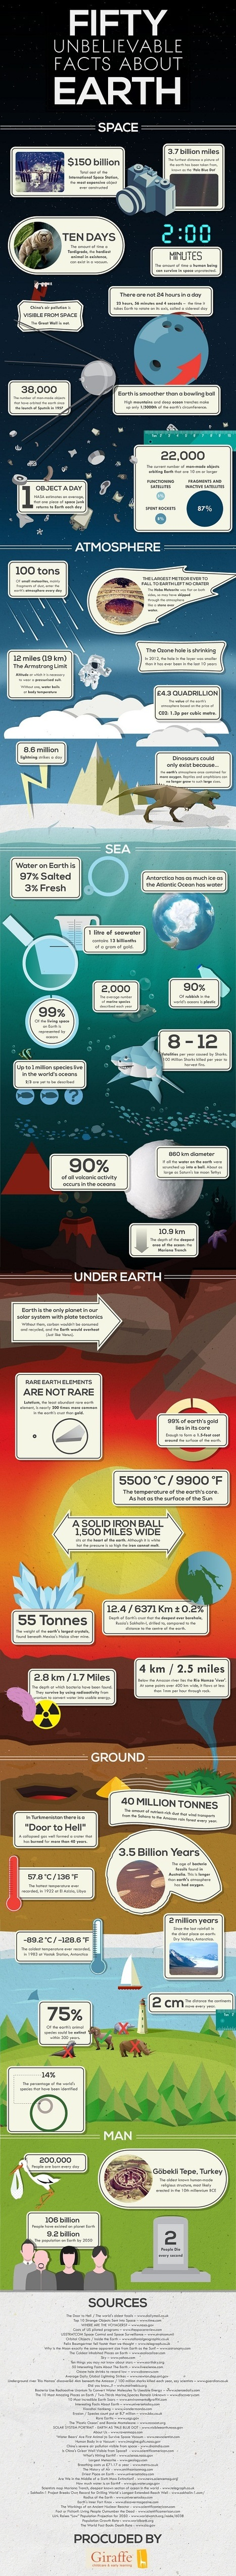 50 Awesome Facts About Earth To Share With Your Class [Infographic] | iScience Teacher | Scoop.it